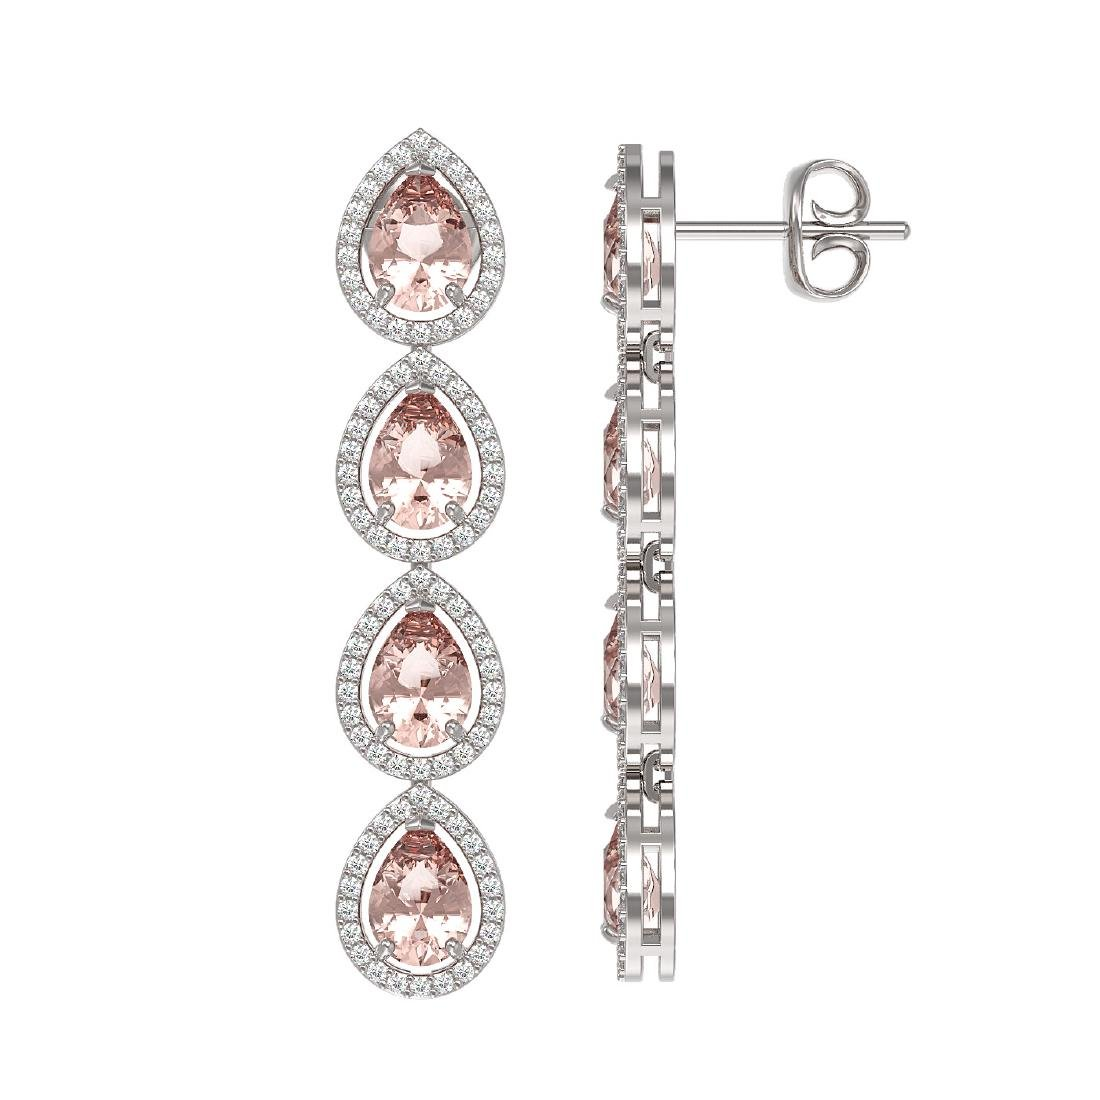 7.8 CTW Morganite & Diamond Halo Earrings 10K White - 2